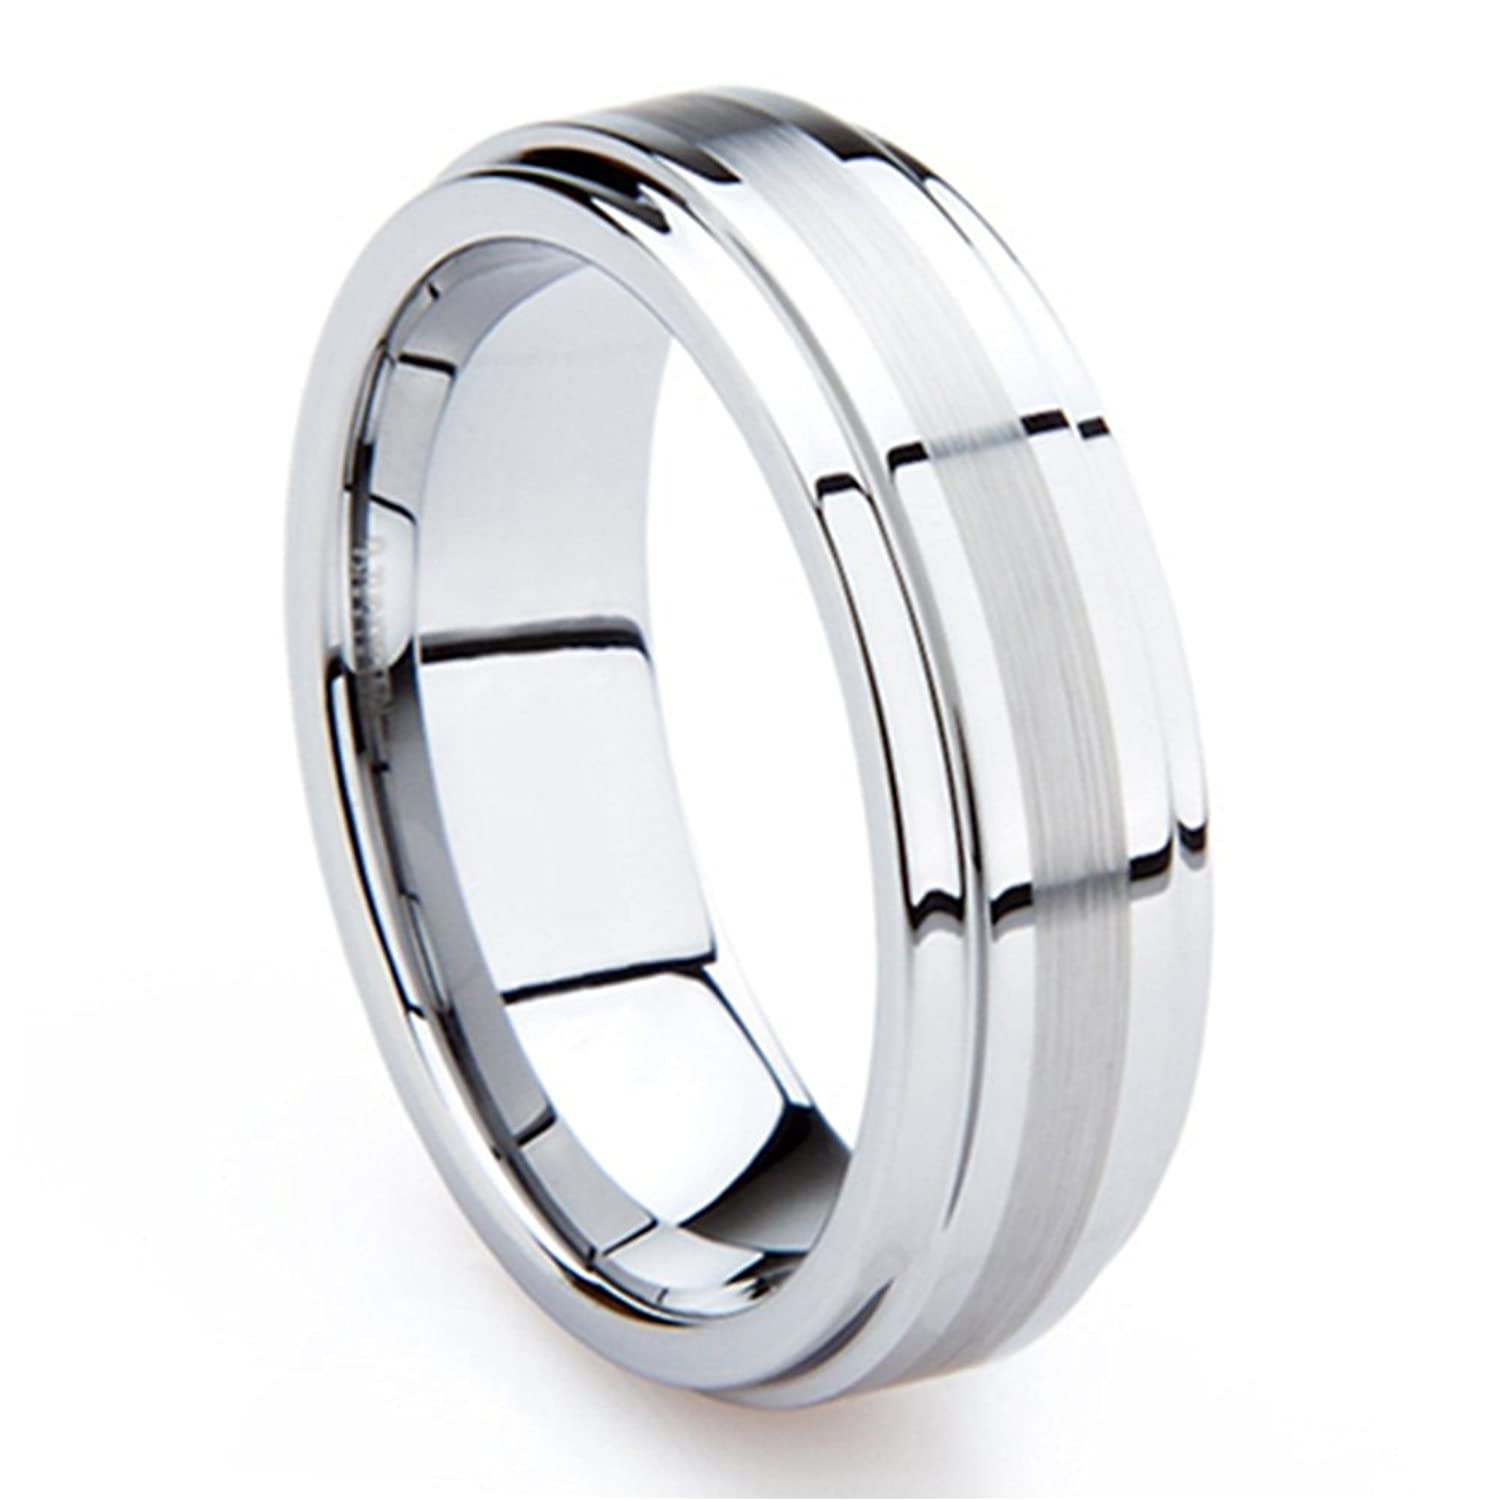 8mm tungsten metal mens wedding band ring in comfort fit and brush center sz 120 amazoncom - Amazon Wedding Rings